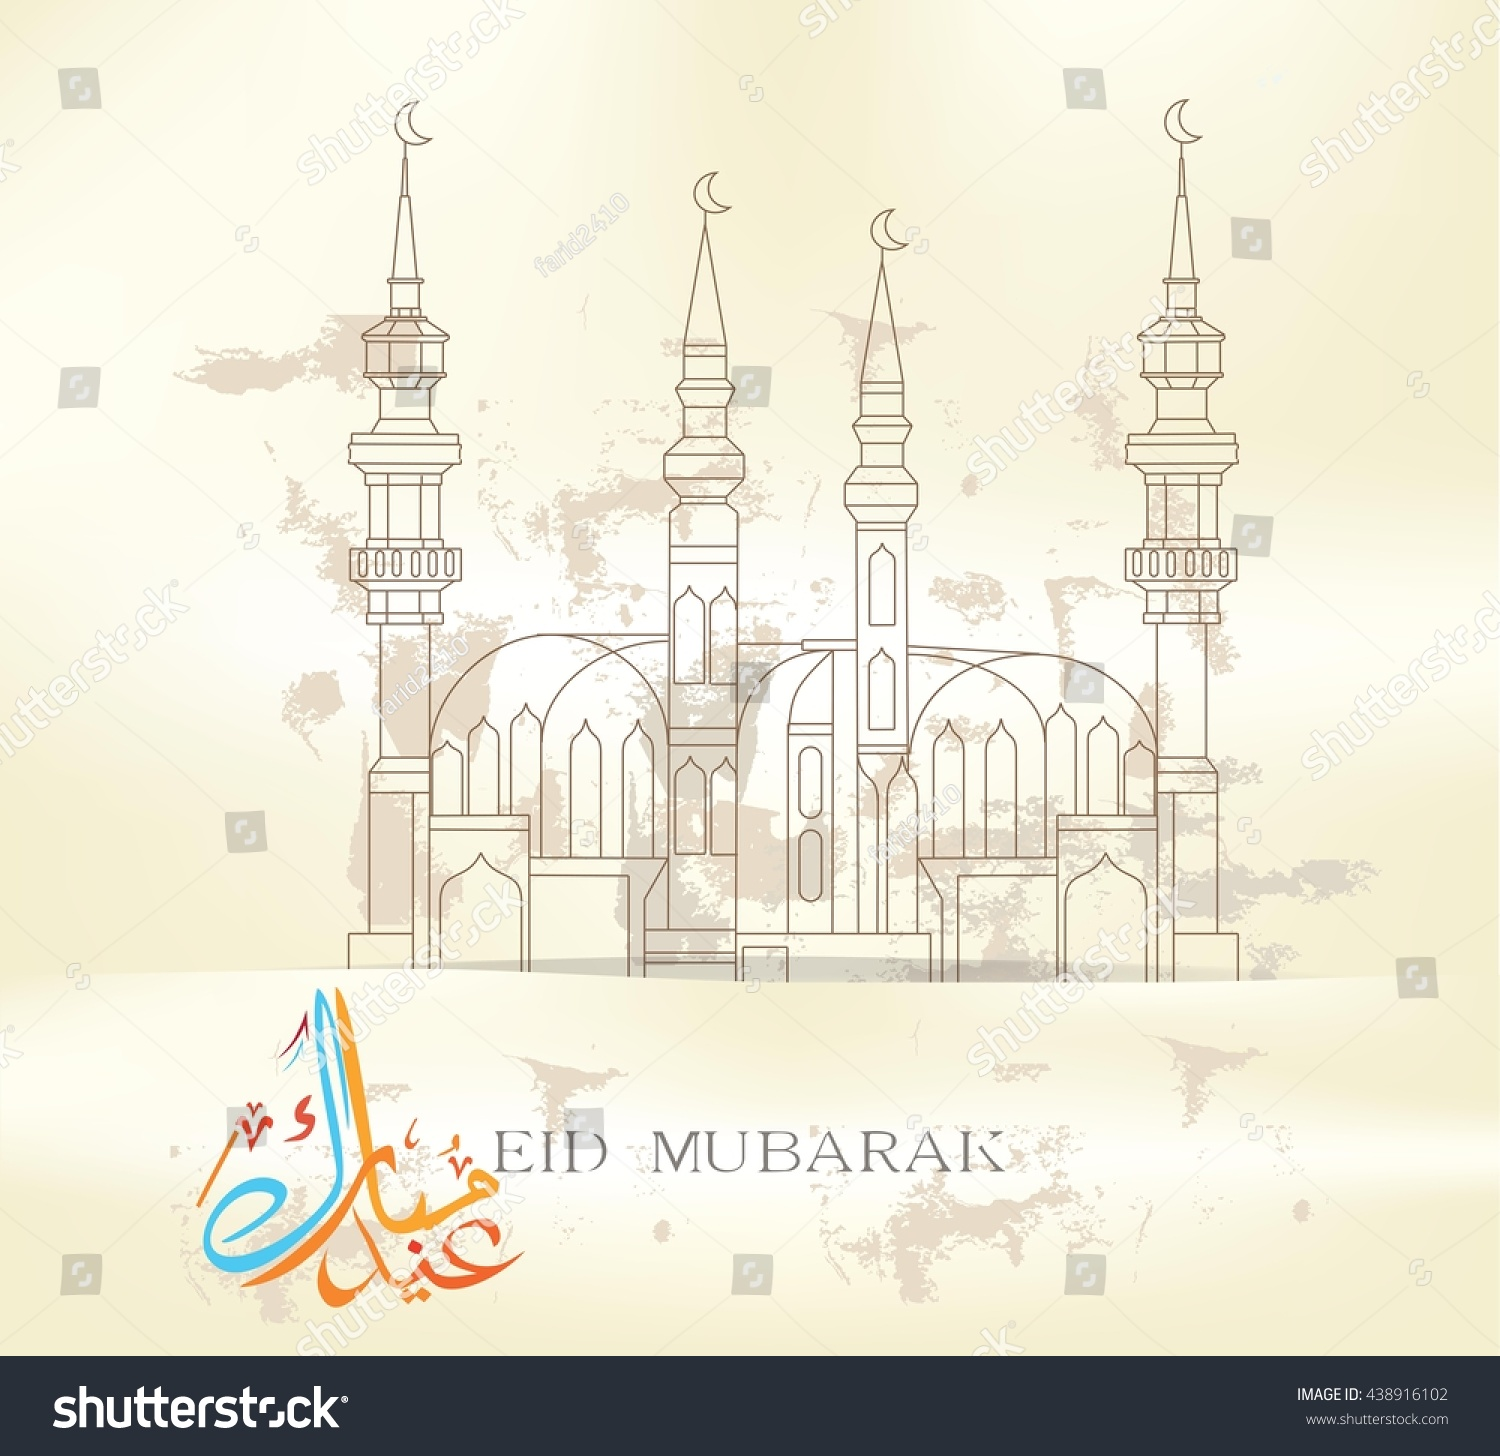 Royalty Free Eid Mubarak Vector Sketch Lantern And 438916102 Stock